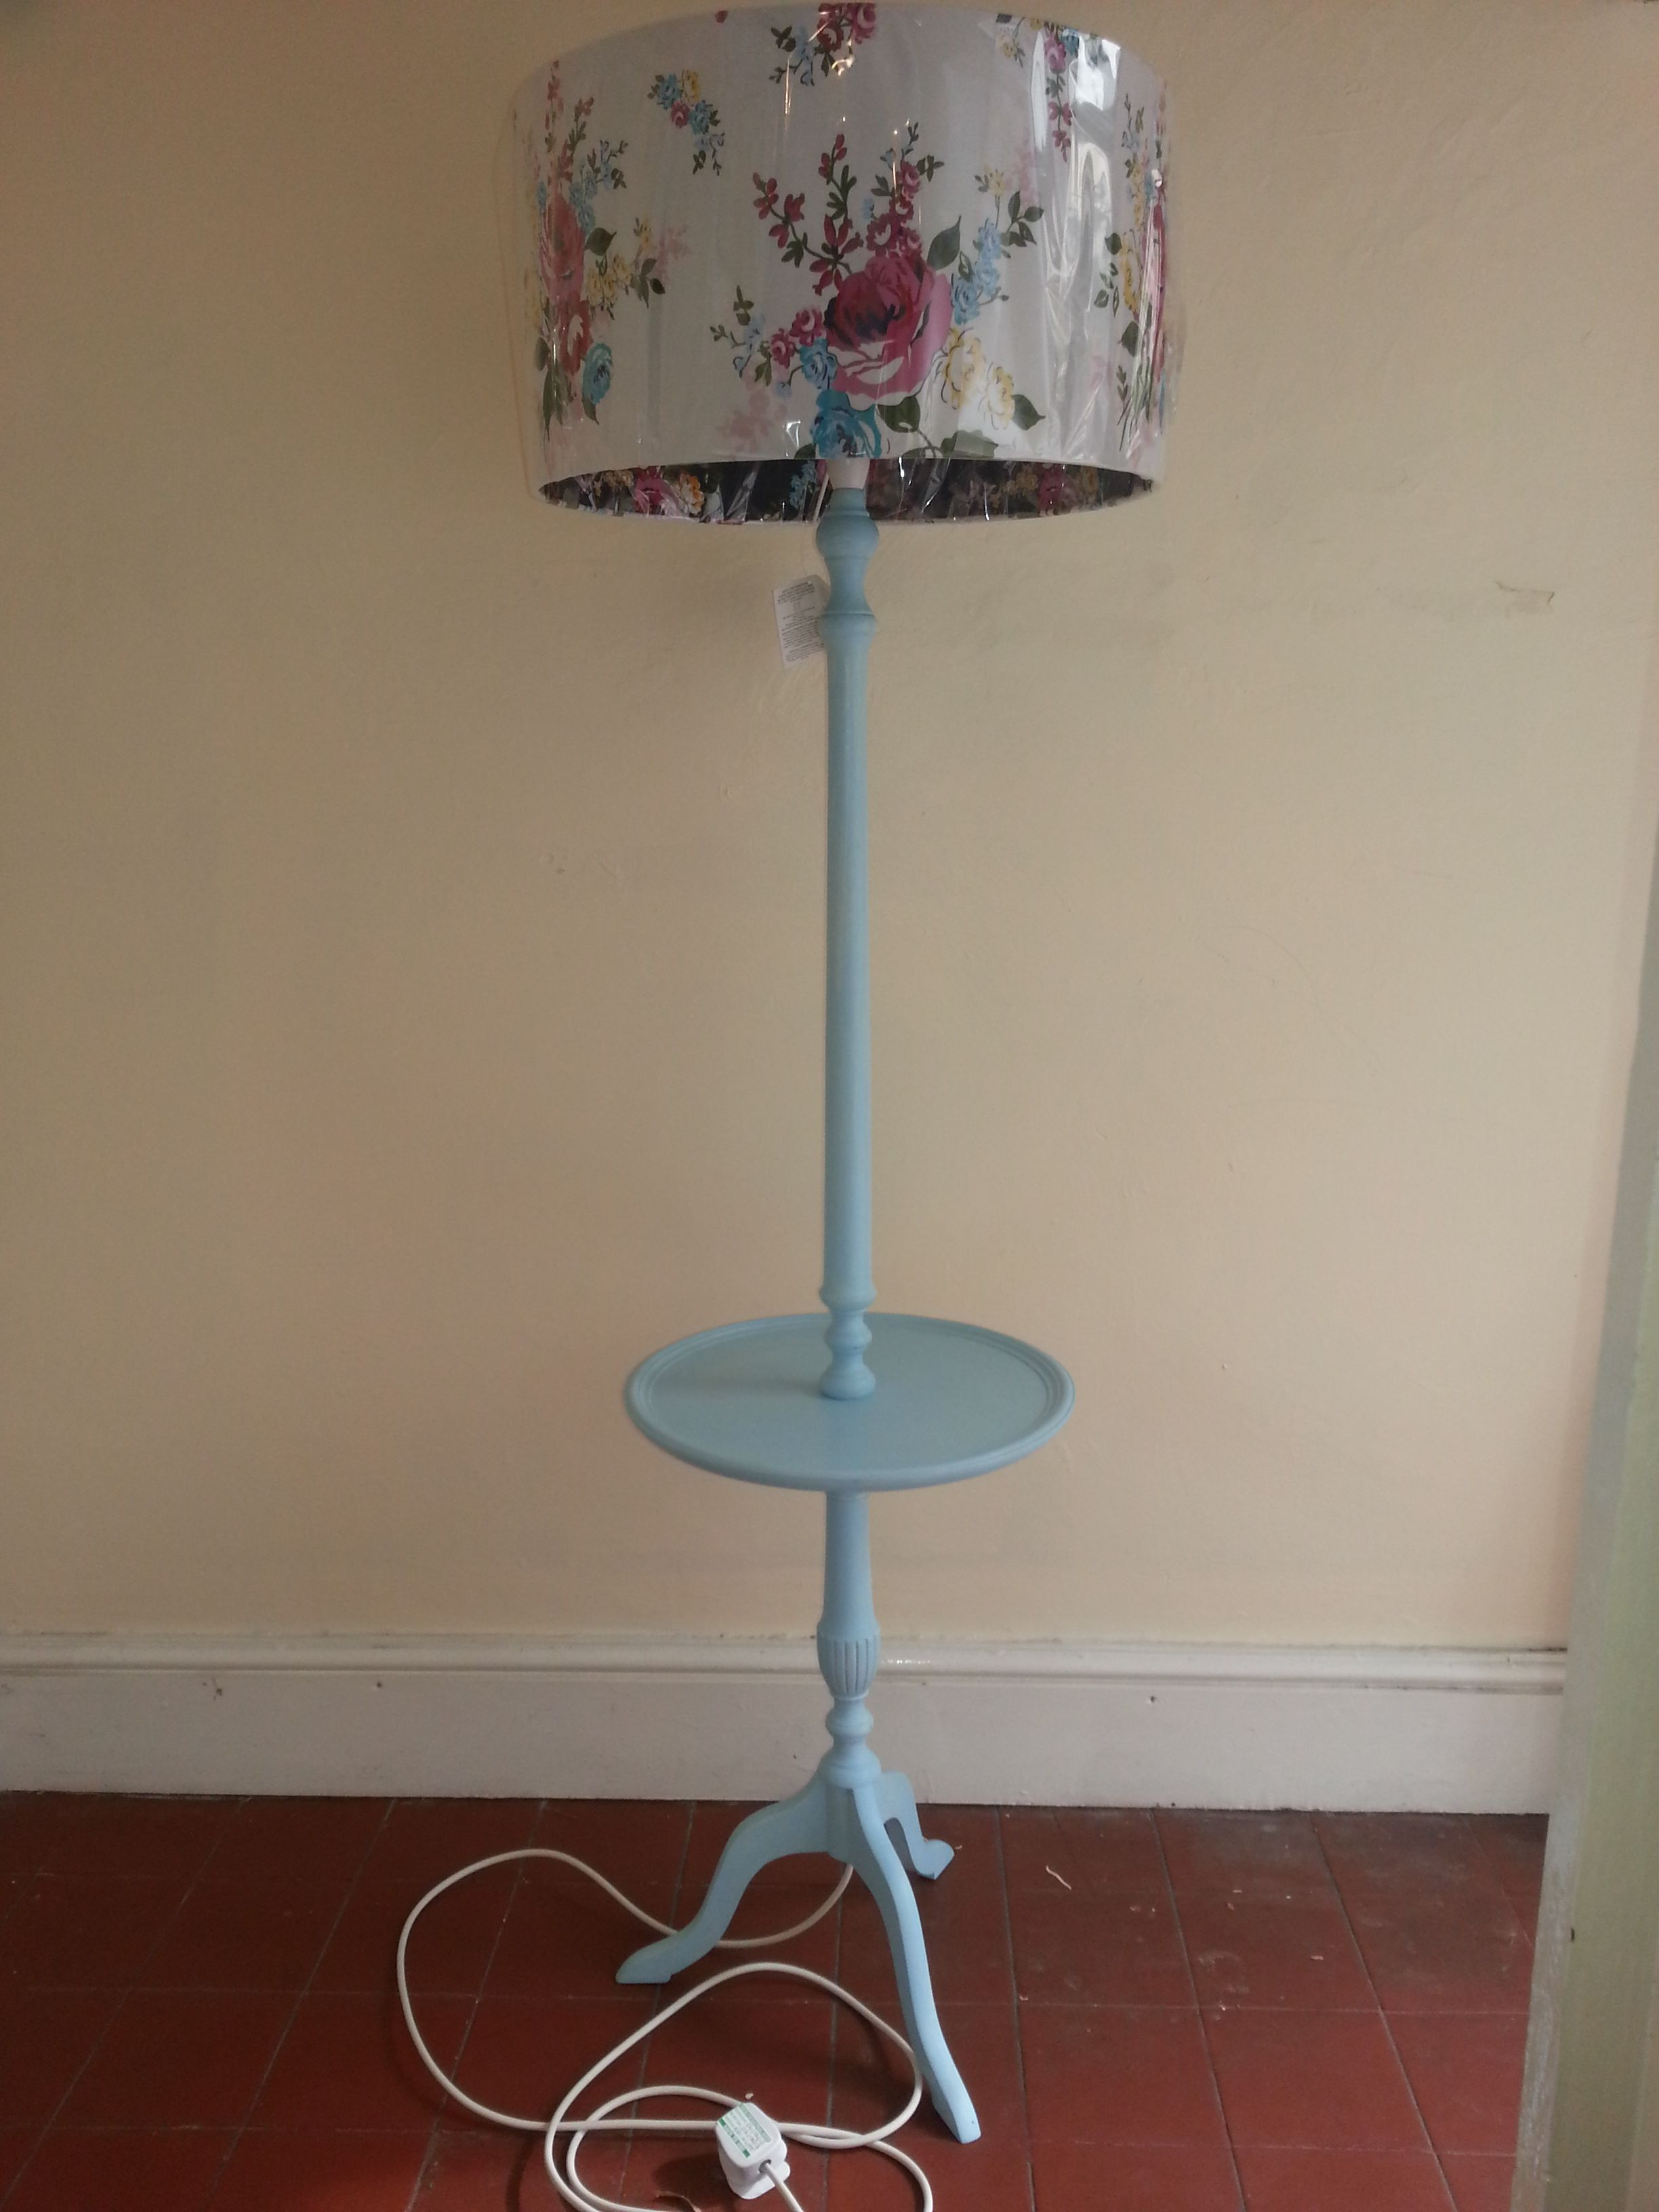 Standard lamp and shade general shop pictures pinterest standard lamp and shade aloadofball Choice Image